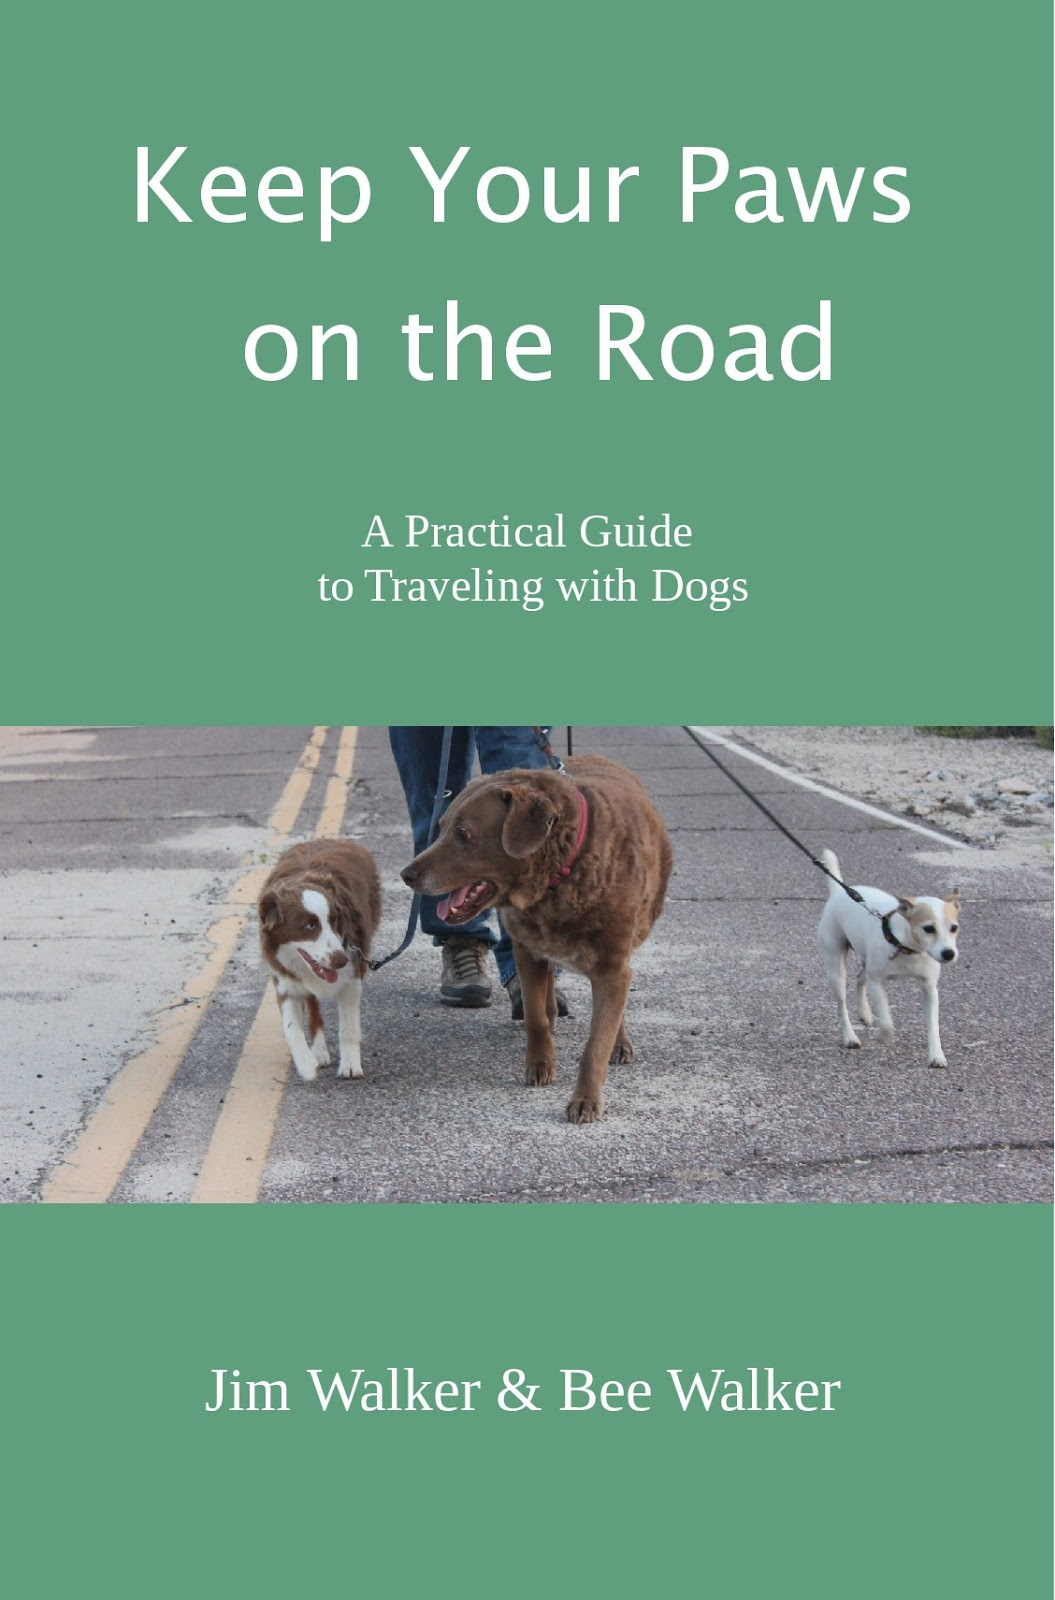 how to keep dog away from road